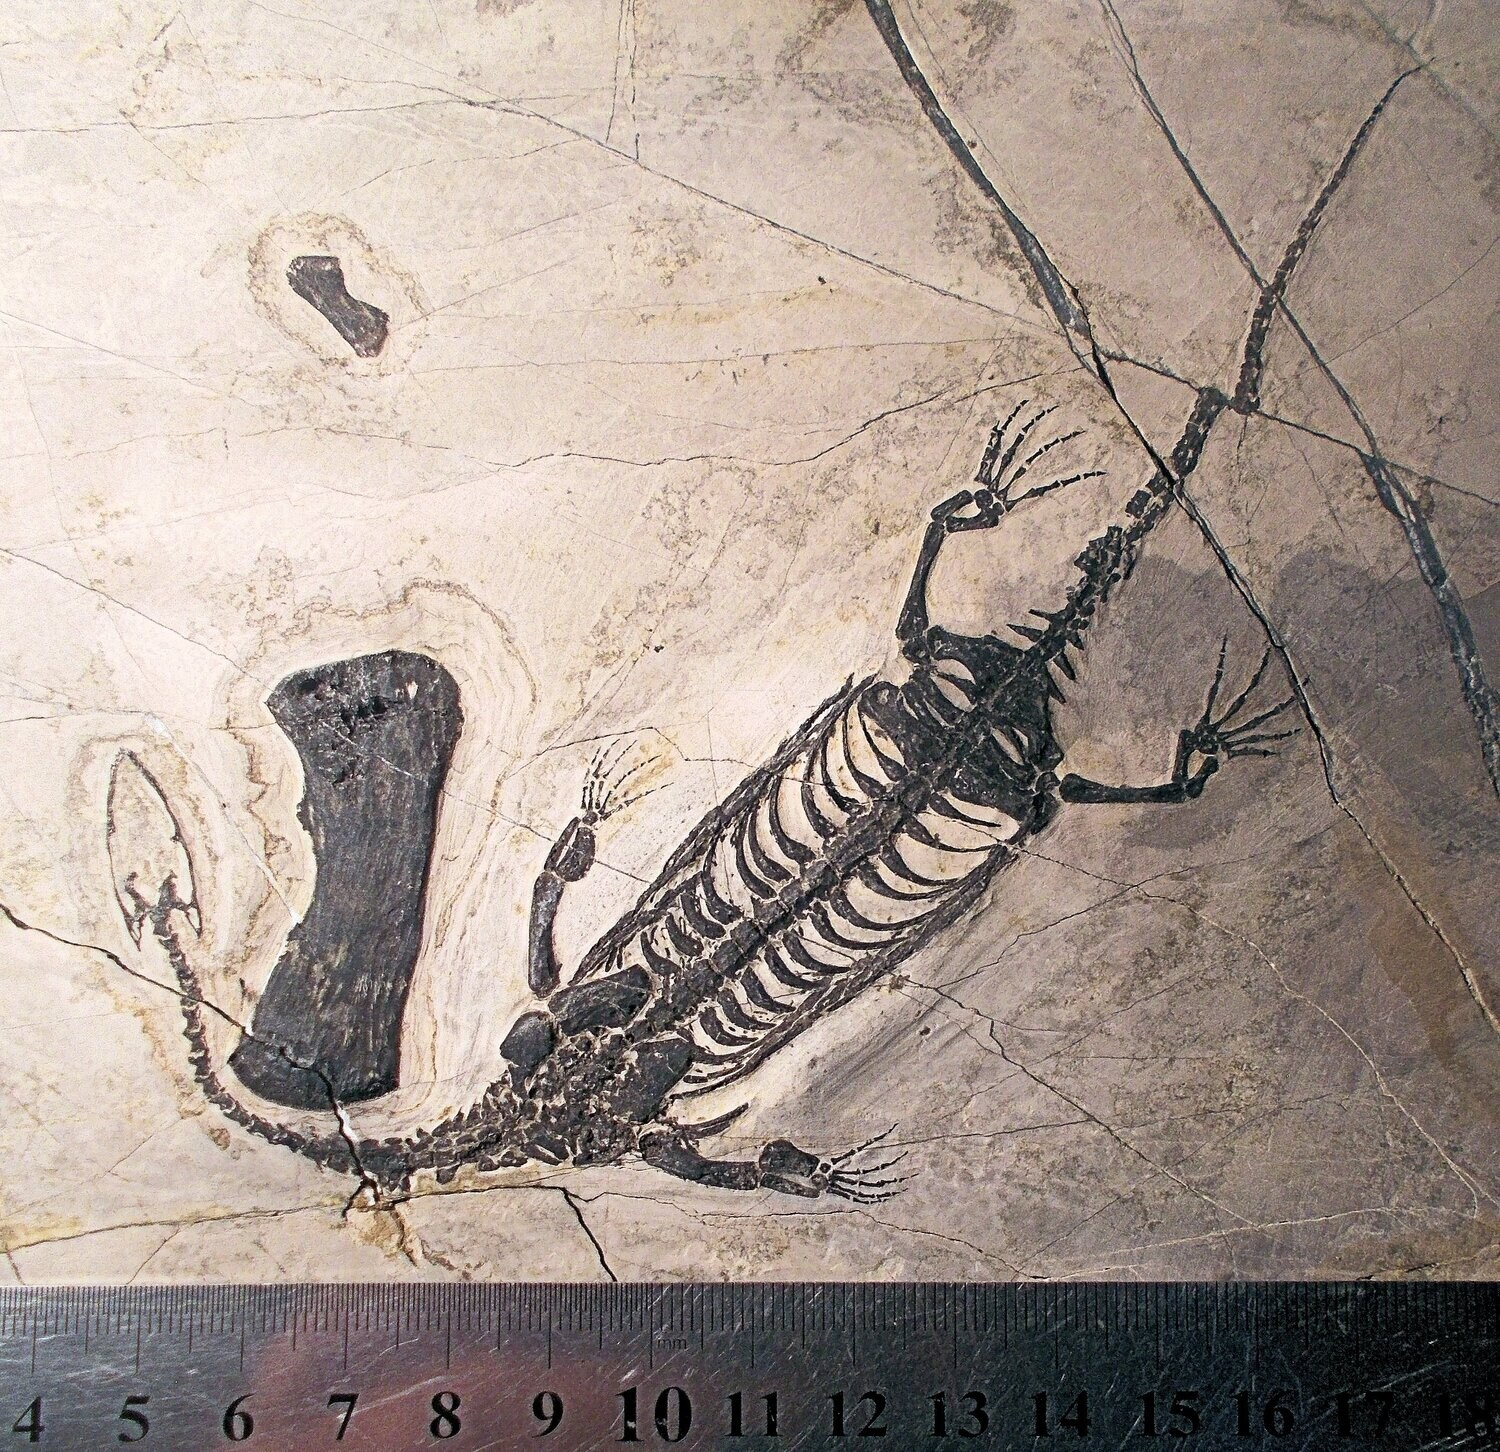 Excellent complete 22cm Kiechiosaurus hui with fine detail of limbs with digits, vertebrae/ribs :Triassic of Guizhou, China.